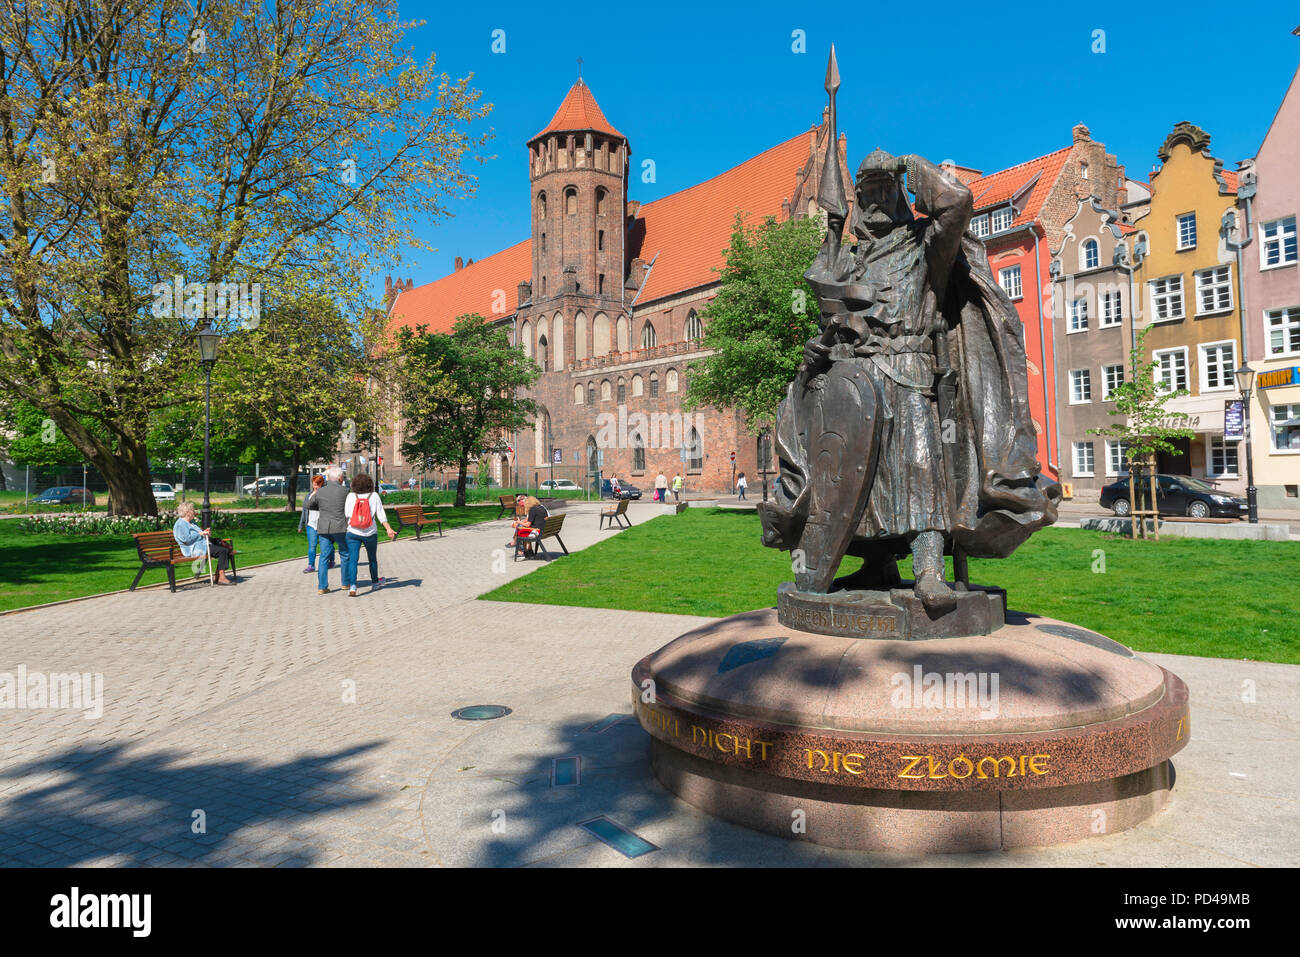 Gdansk city center, statue of the Pomeranian Duke Swietopelk Wielki sited in a small park in the historical Old Town area of Gdansk, Poland. Stock Photo